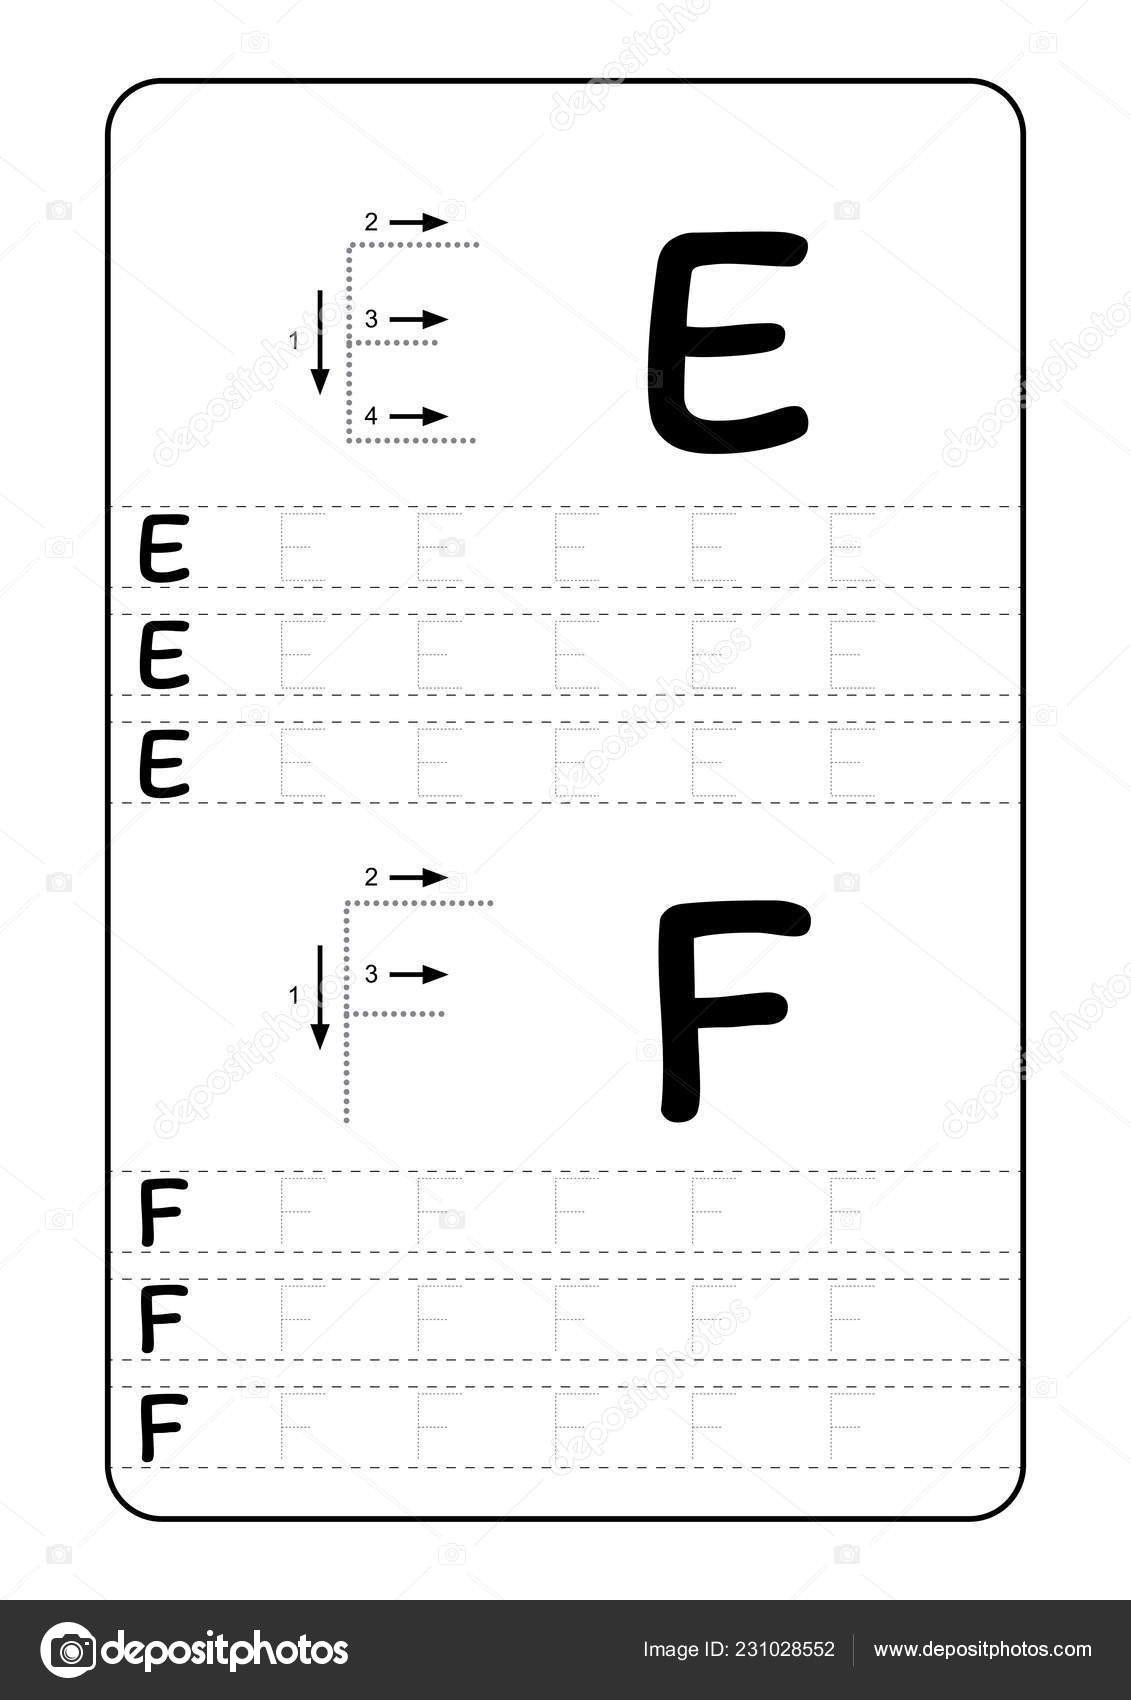 Abc Tracing Worksheets for Kindergarten Abc Alphabet Letters Tracing Worksheet with Alphabet Letters Basic Writing Practice for Kindergarten Kids A4 Paper Ready to Print Vector Illustration